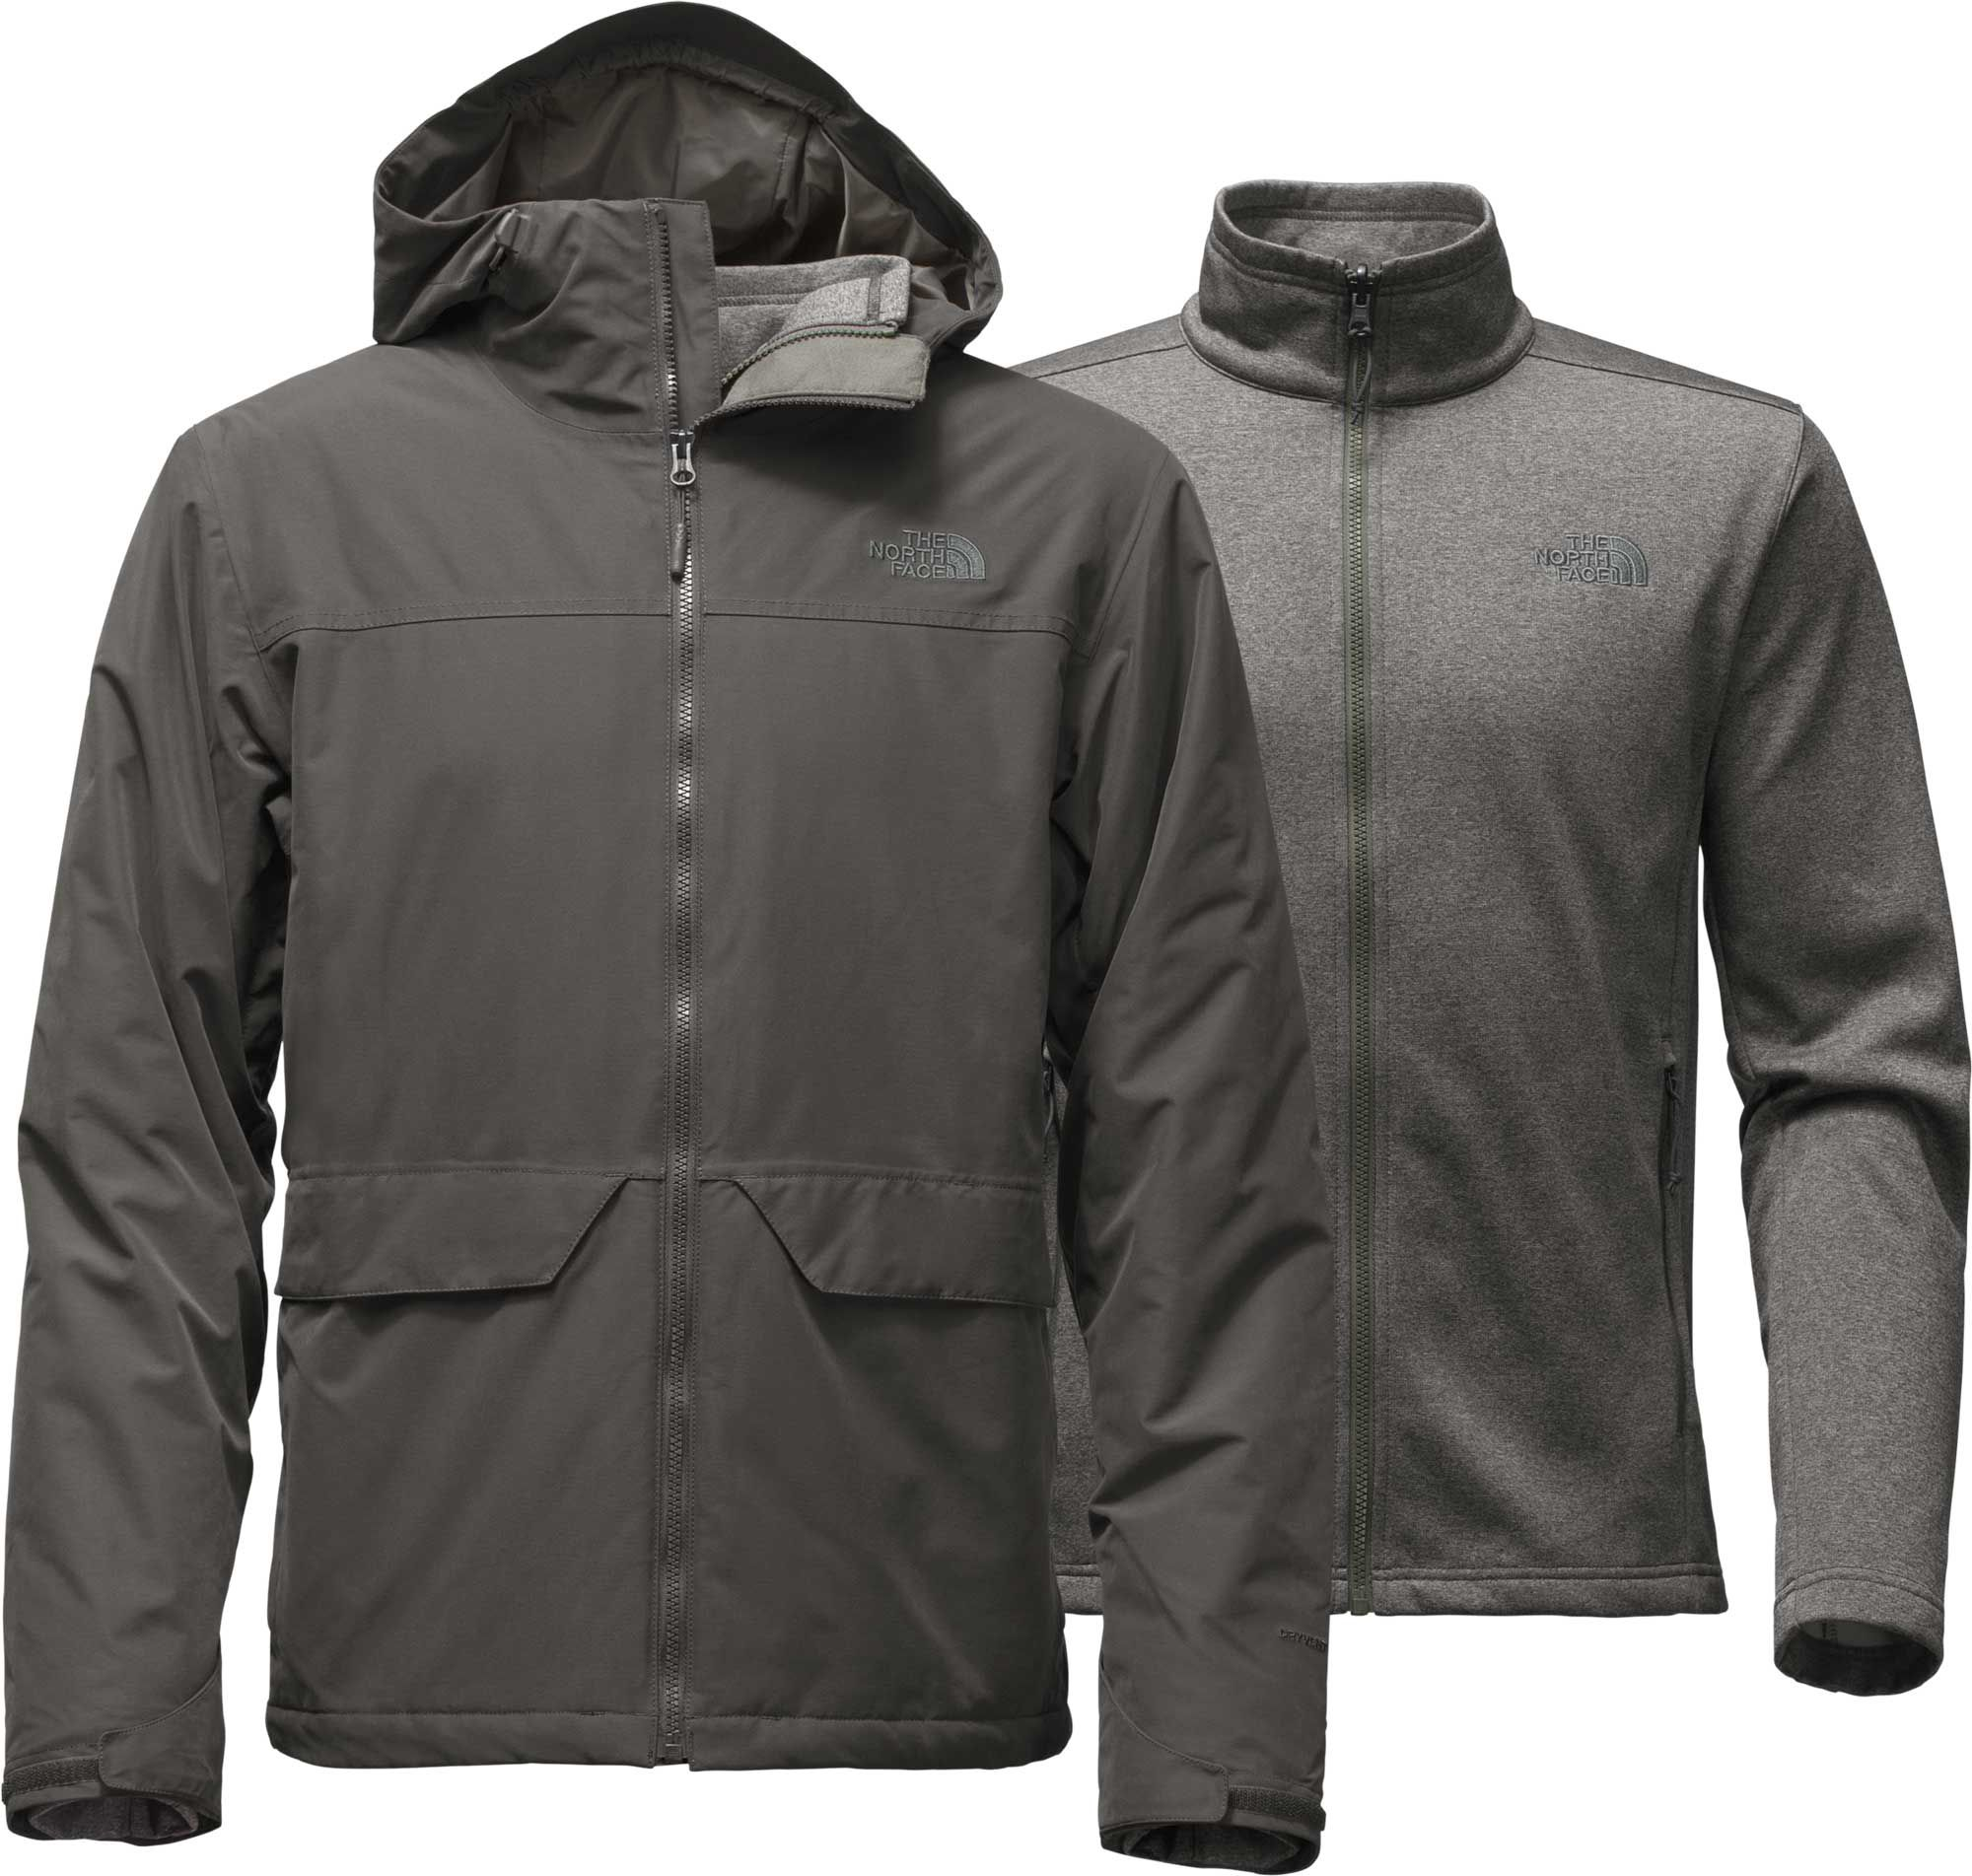 Men's Jackets & Winter Coats | DICK'S Sporting Goods